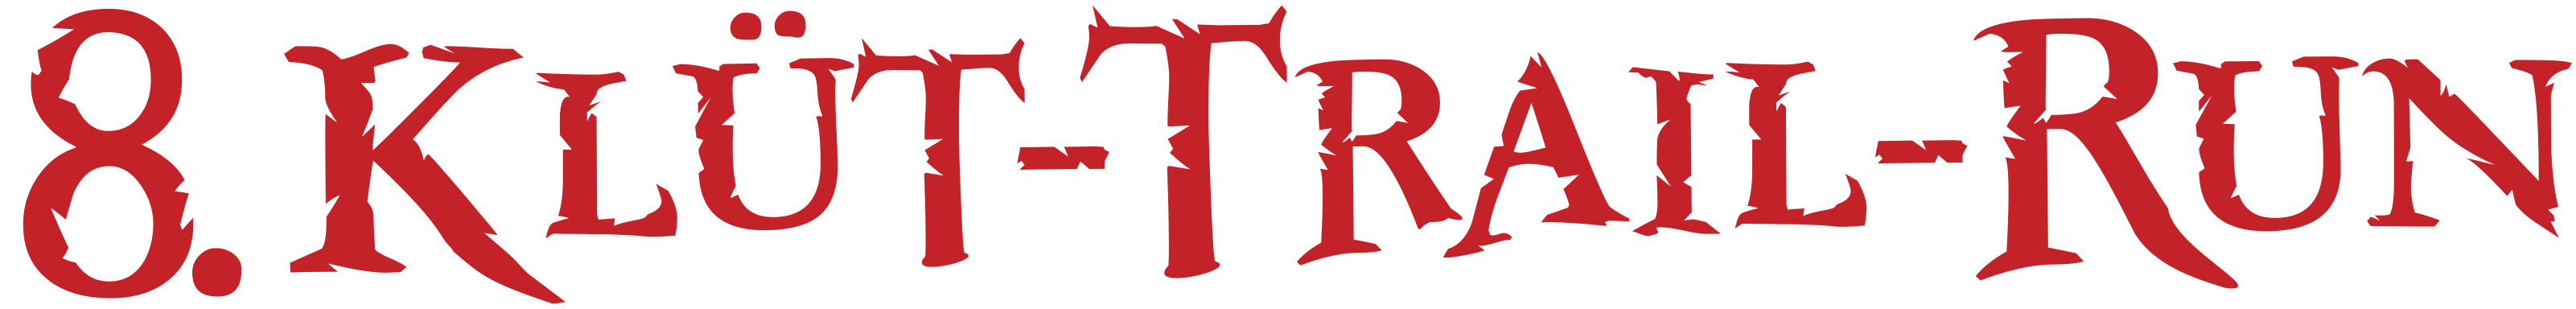 Klüt-Trail-Run Logo